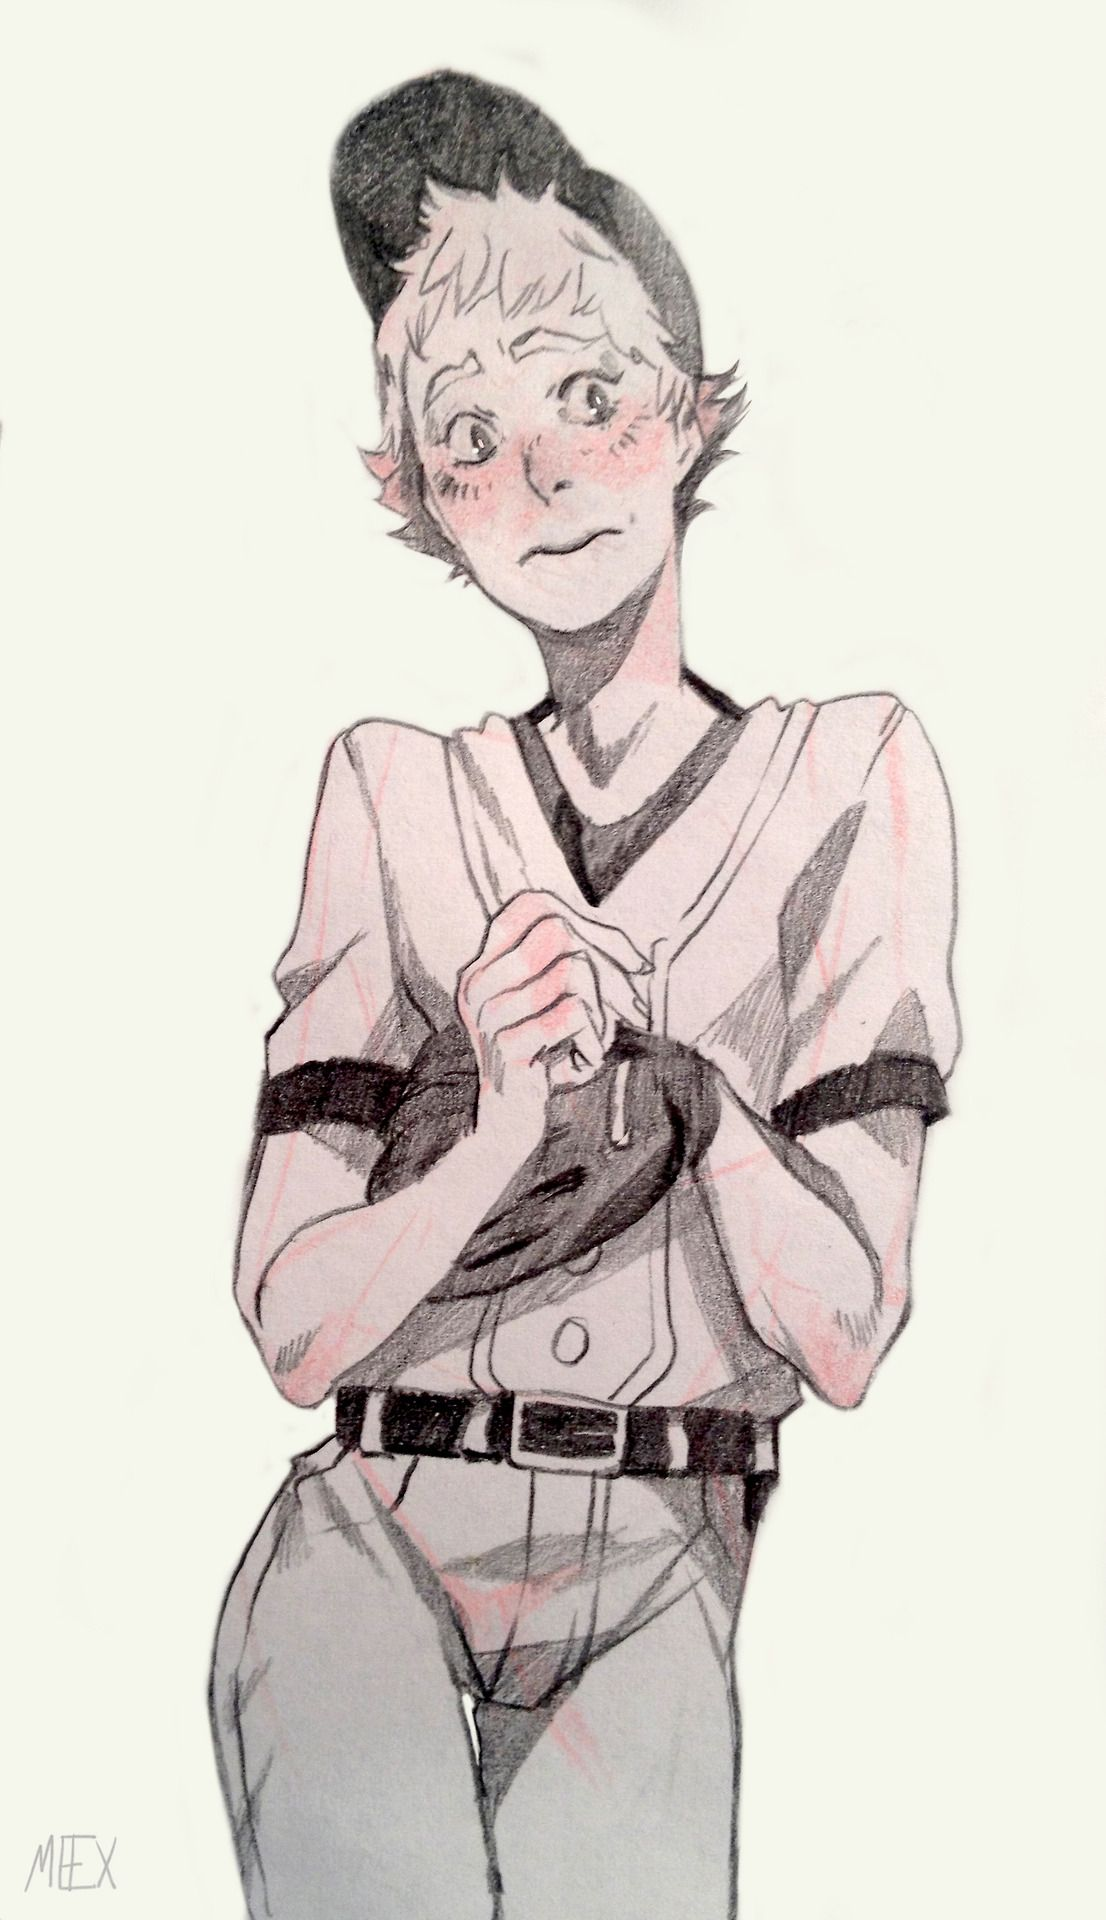 I donut know who this is but heus adorable or a secret yandere